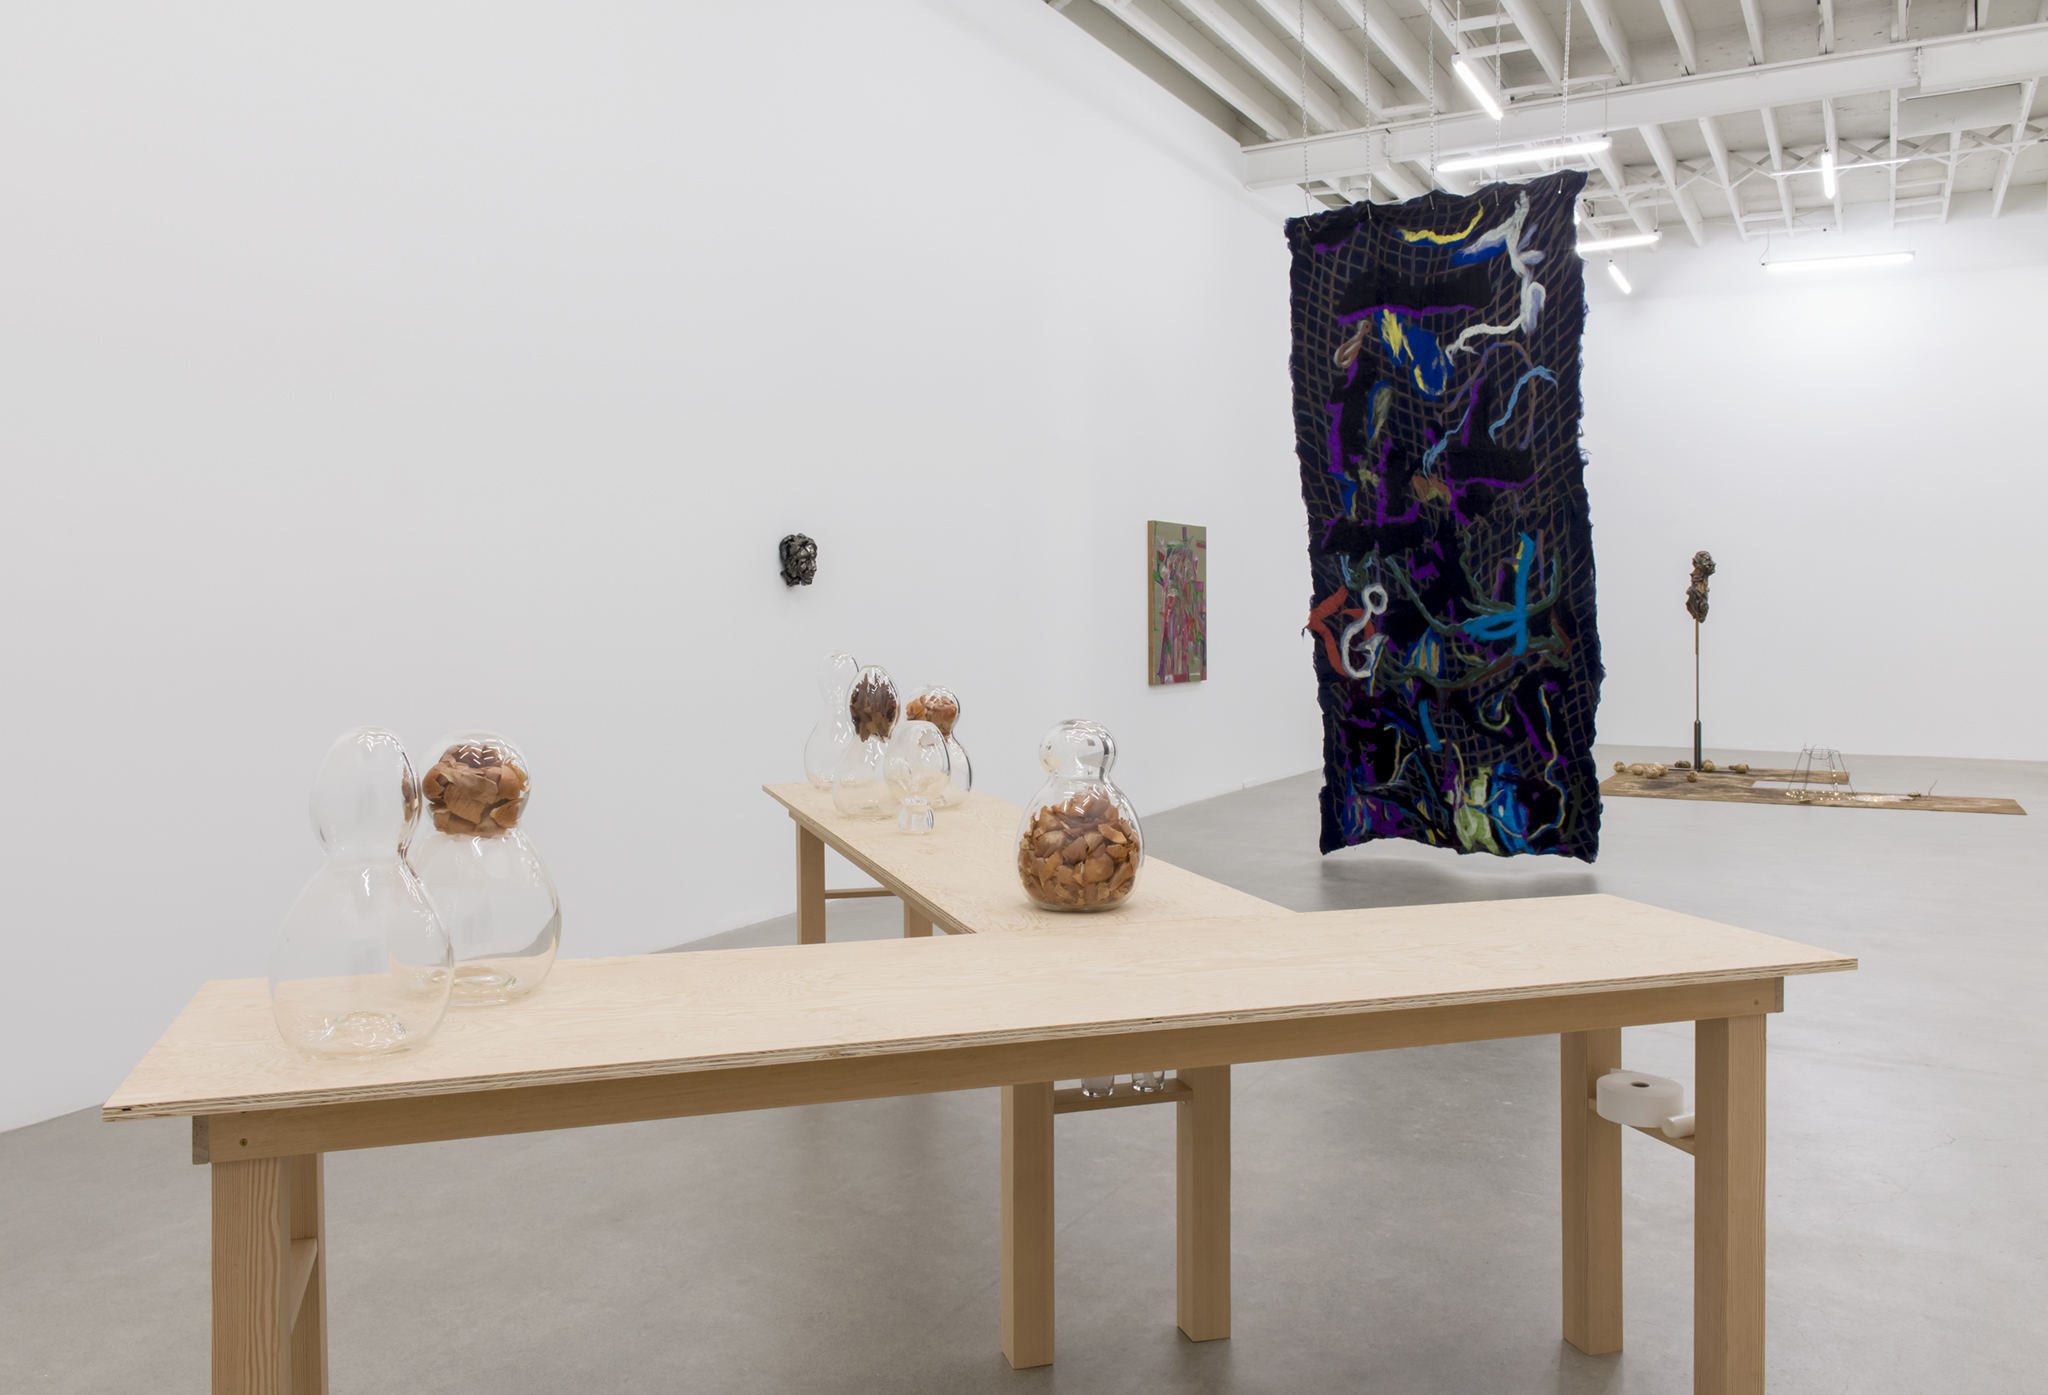 ​Rebecca Brewer, Rochelle Goldberg, Charmian Johnson, Christina Mackie, installation view, ​Nature​, Catriona Jeffries, Vancouver, 2018 by